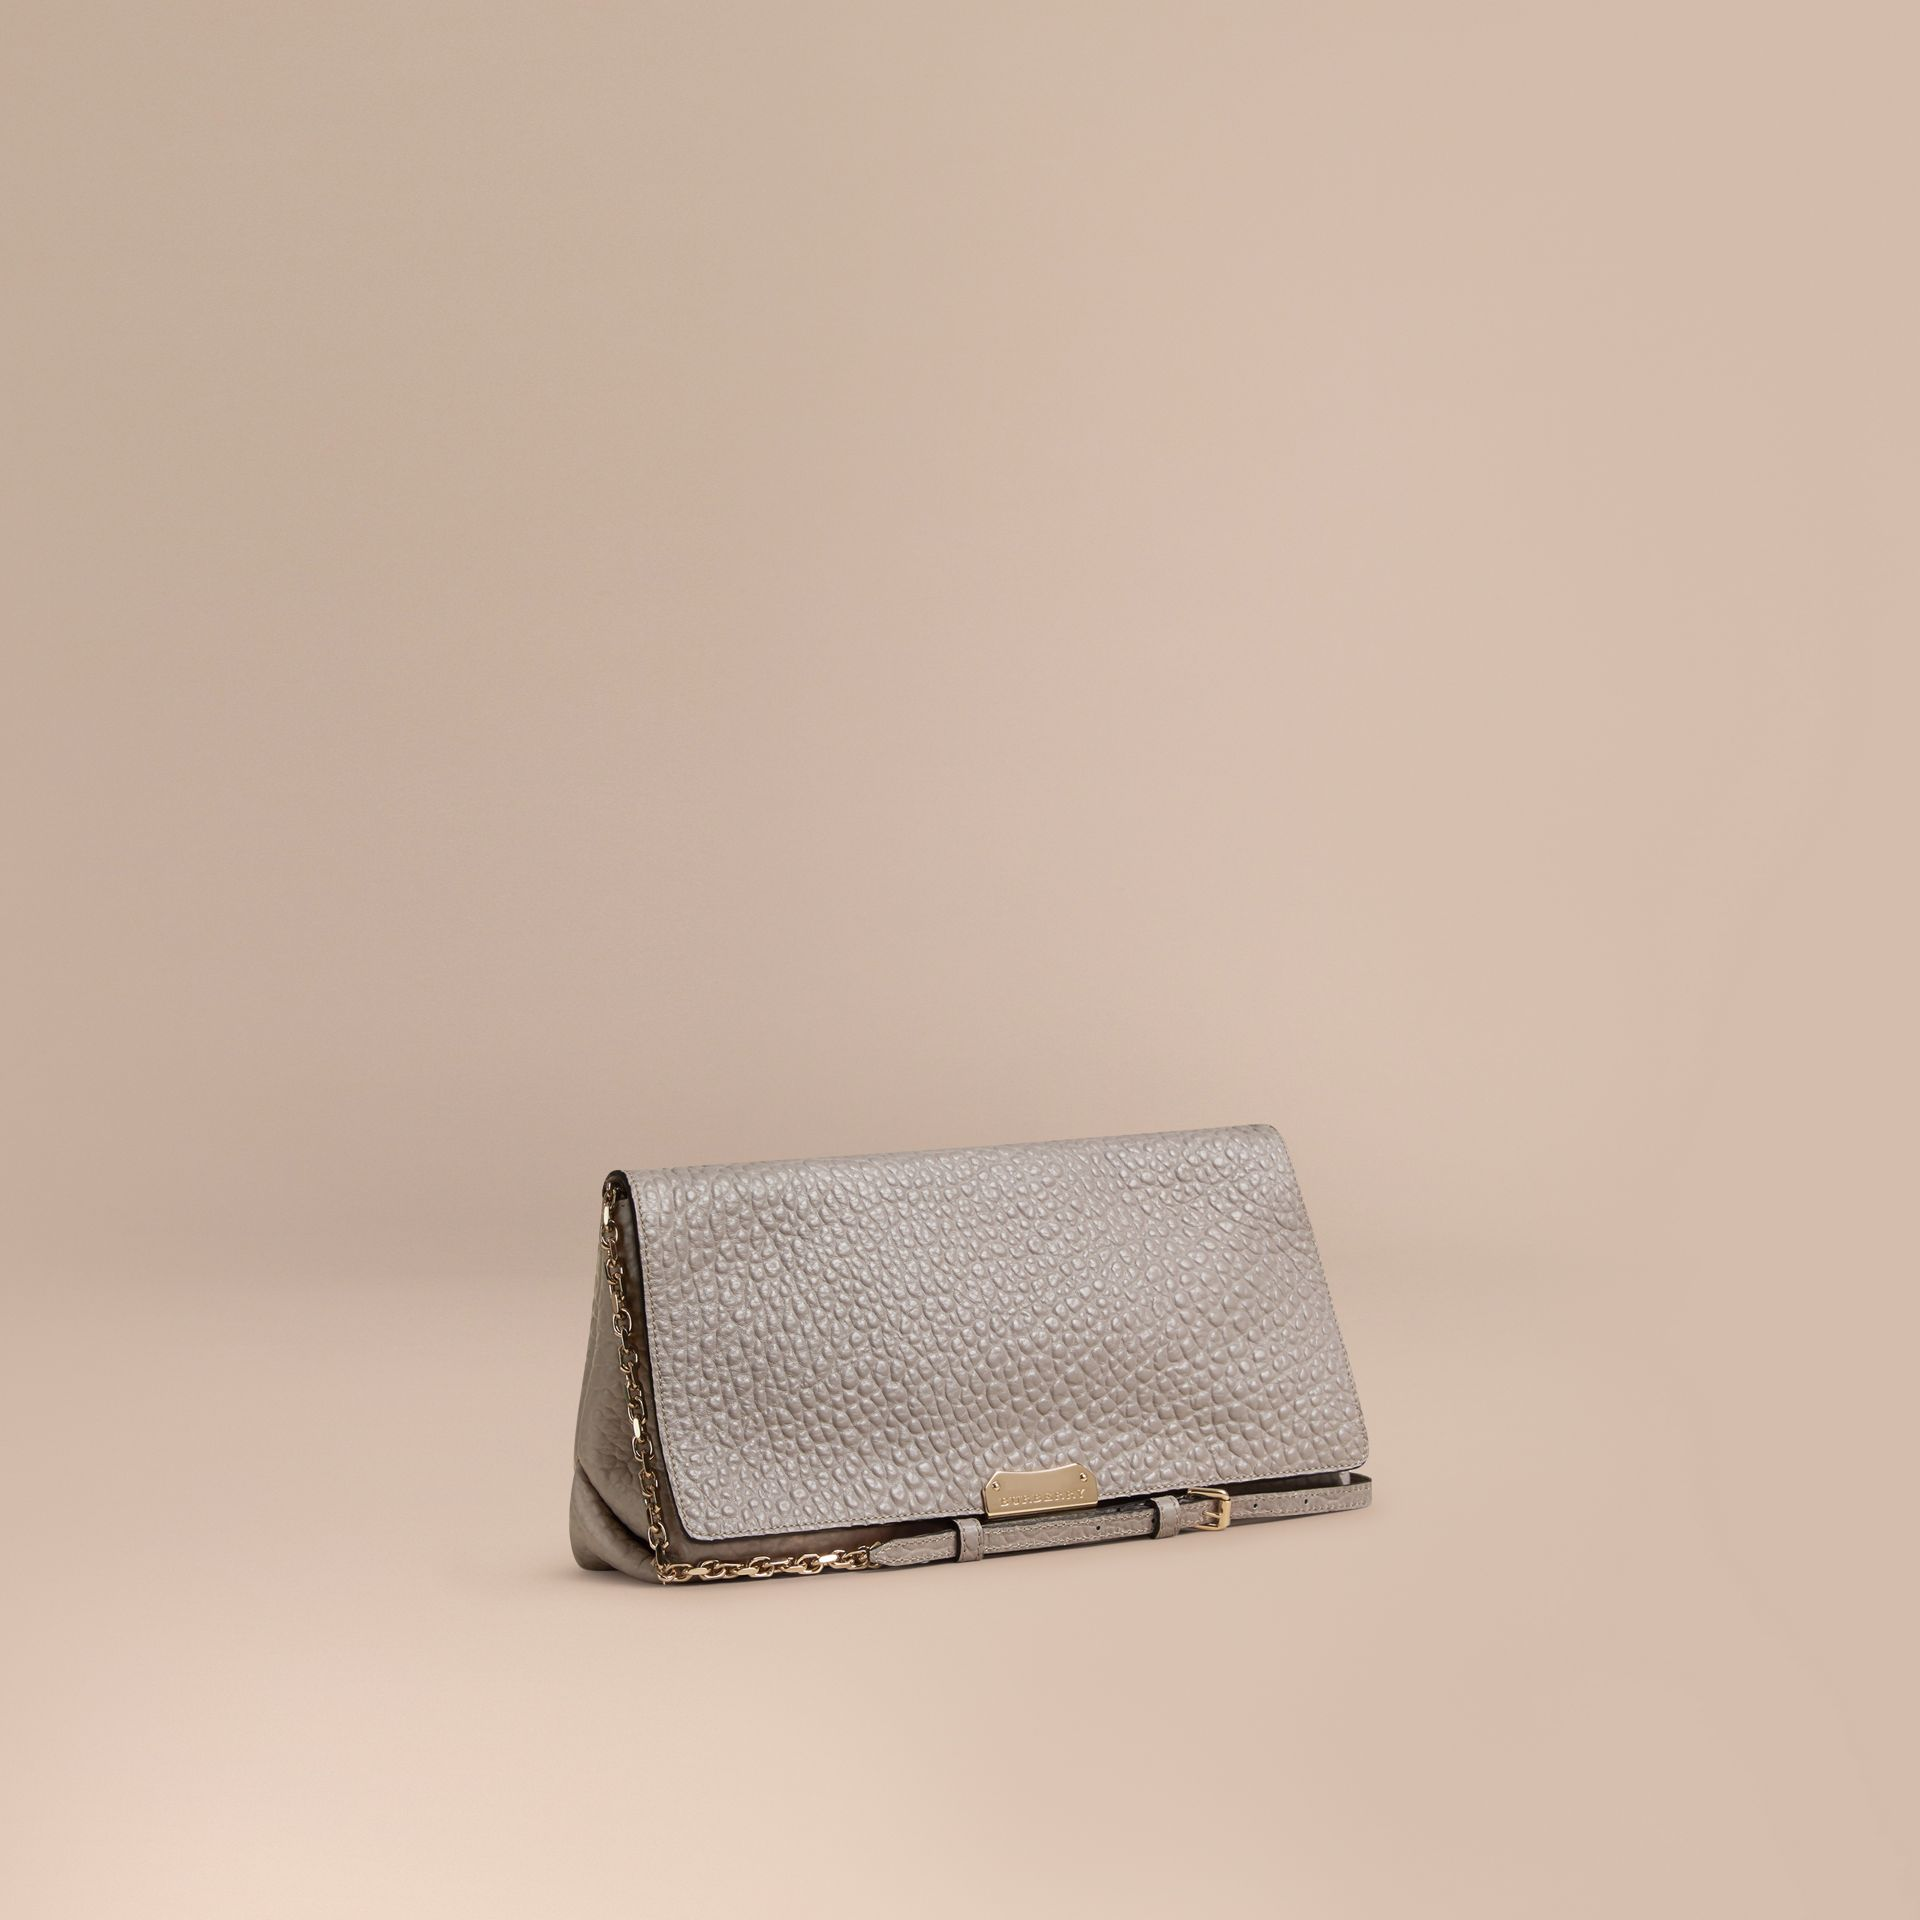 Gris pâle Clutch medium en cuir grainé emblématique Gris Pâle - photo de la galerie 1